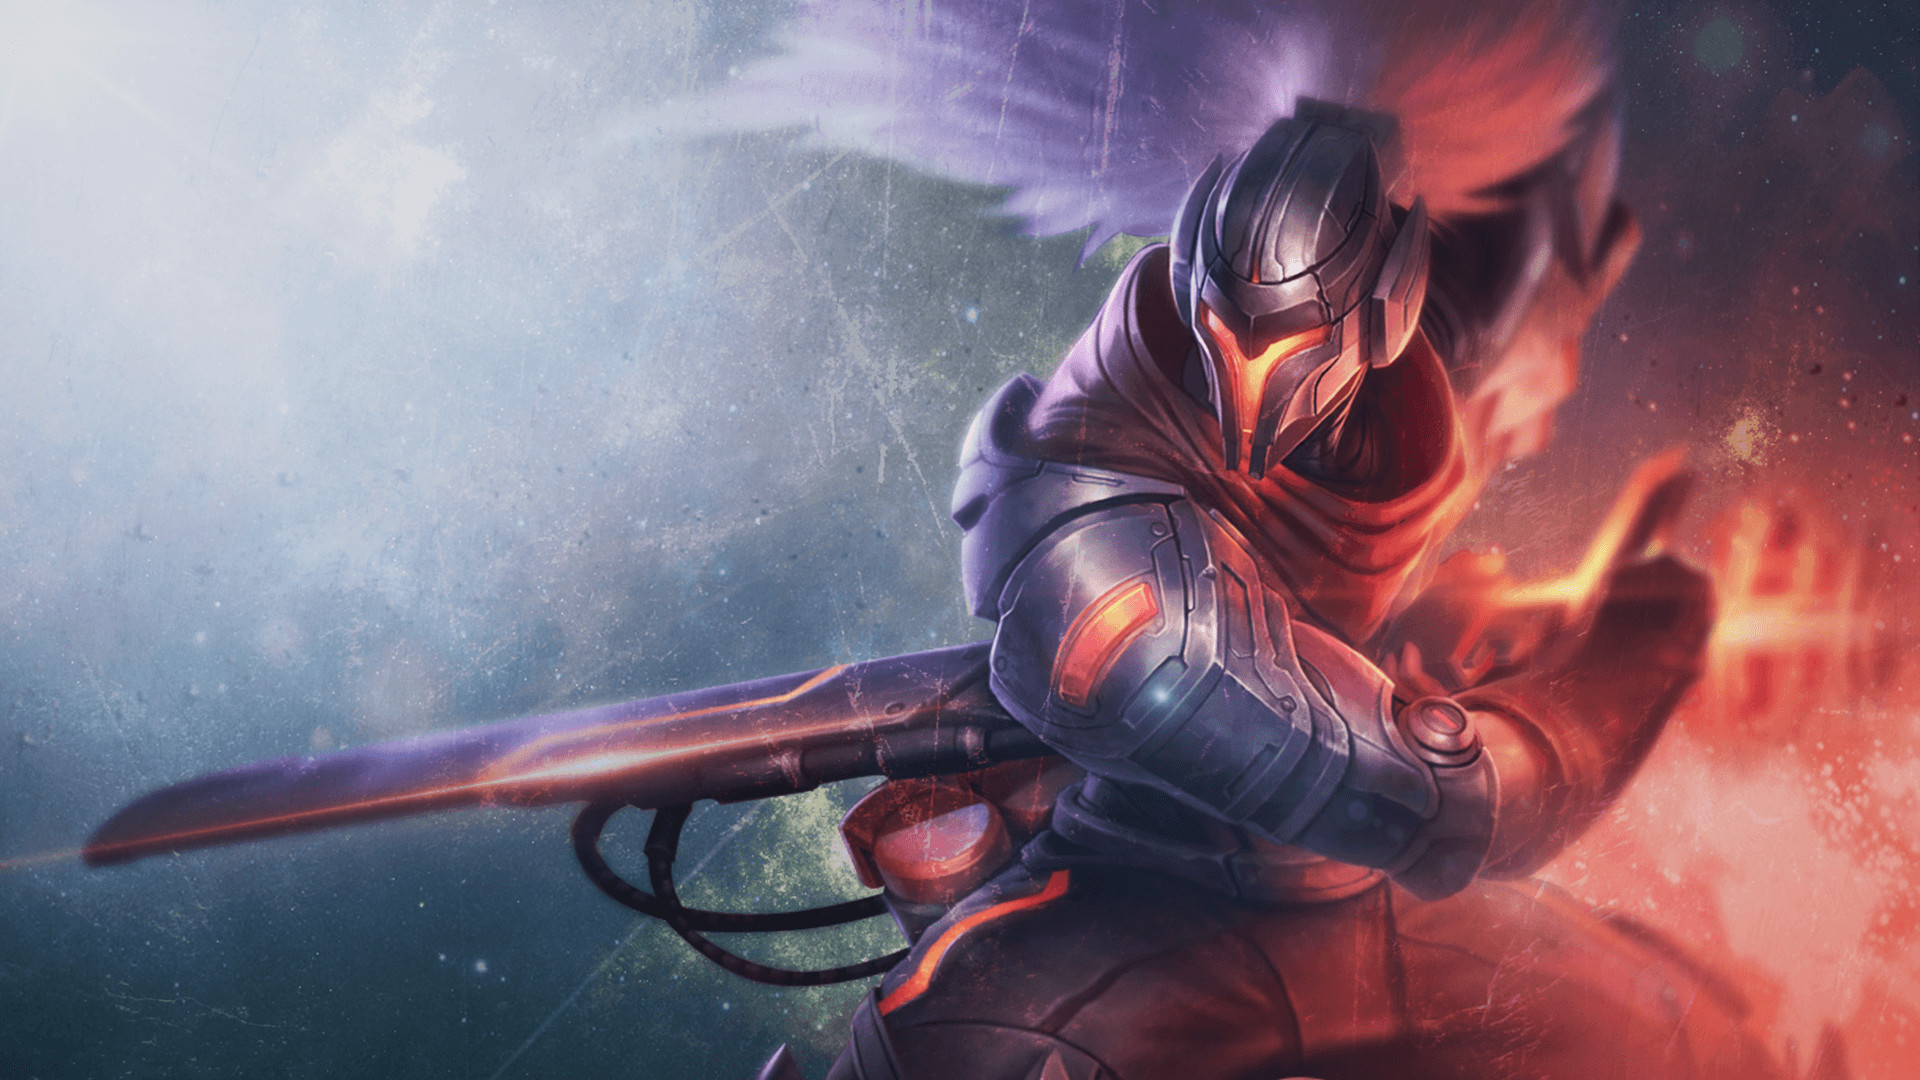 1920x1080 Project Yasuo Wallpaper HD, Images Collection of Project Yasuo HD .